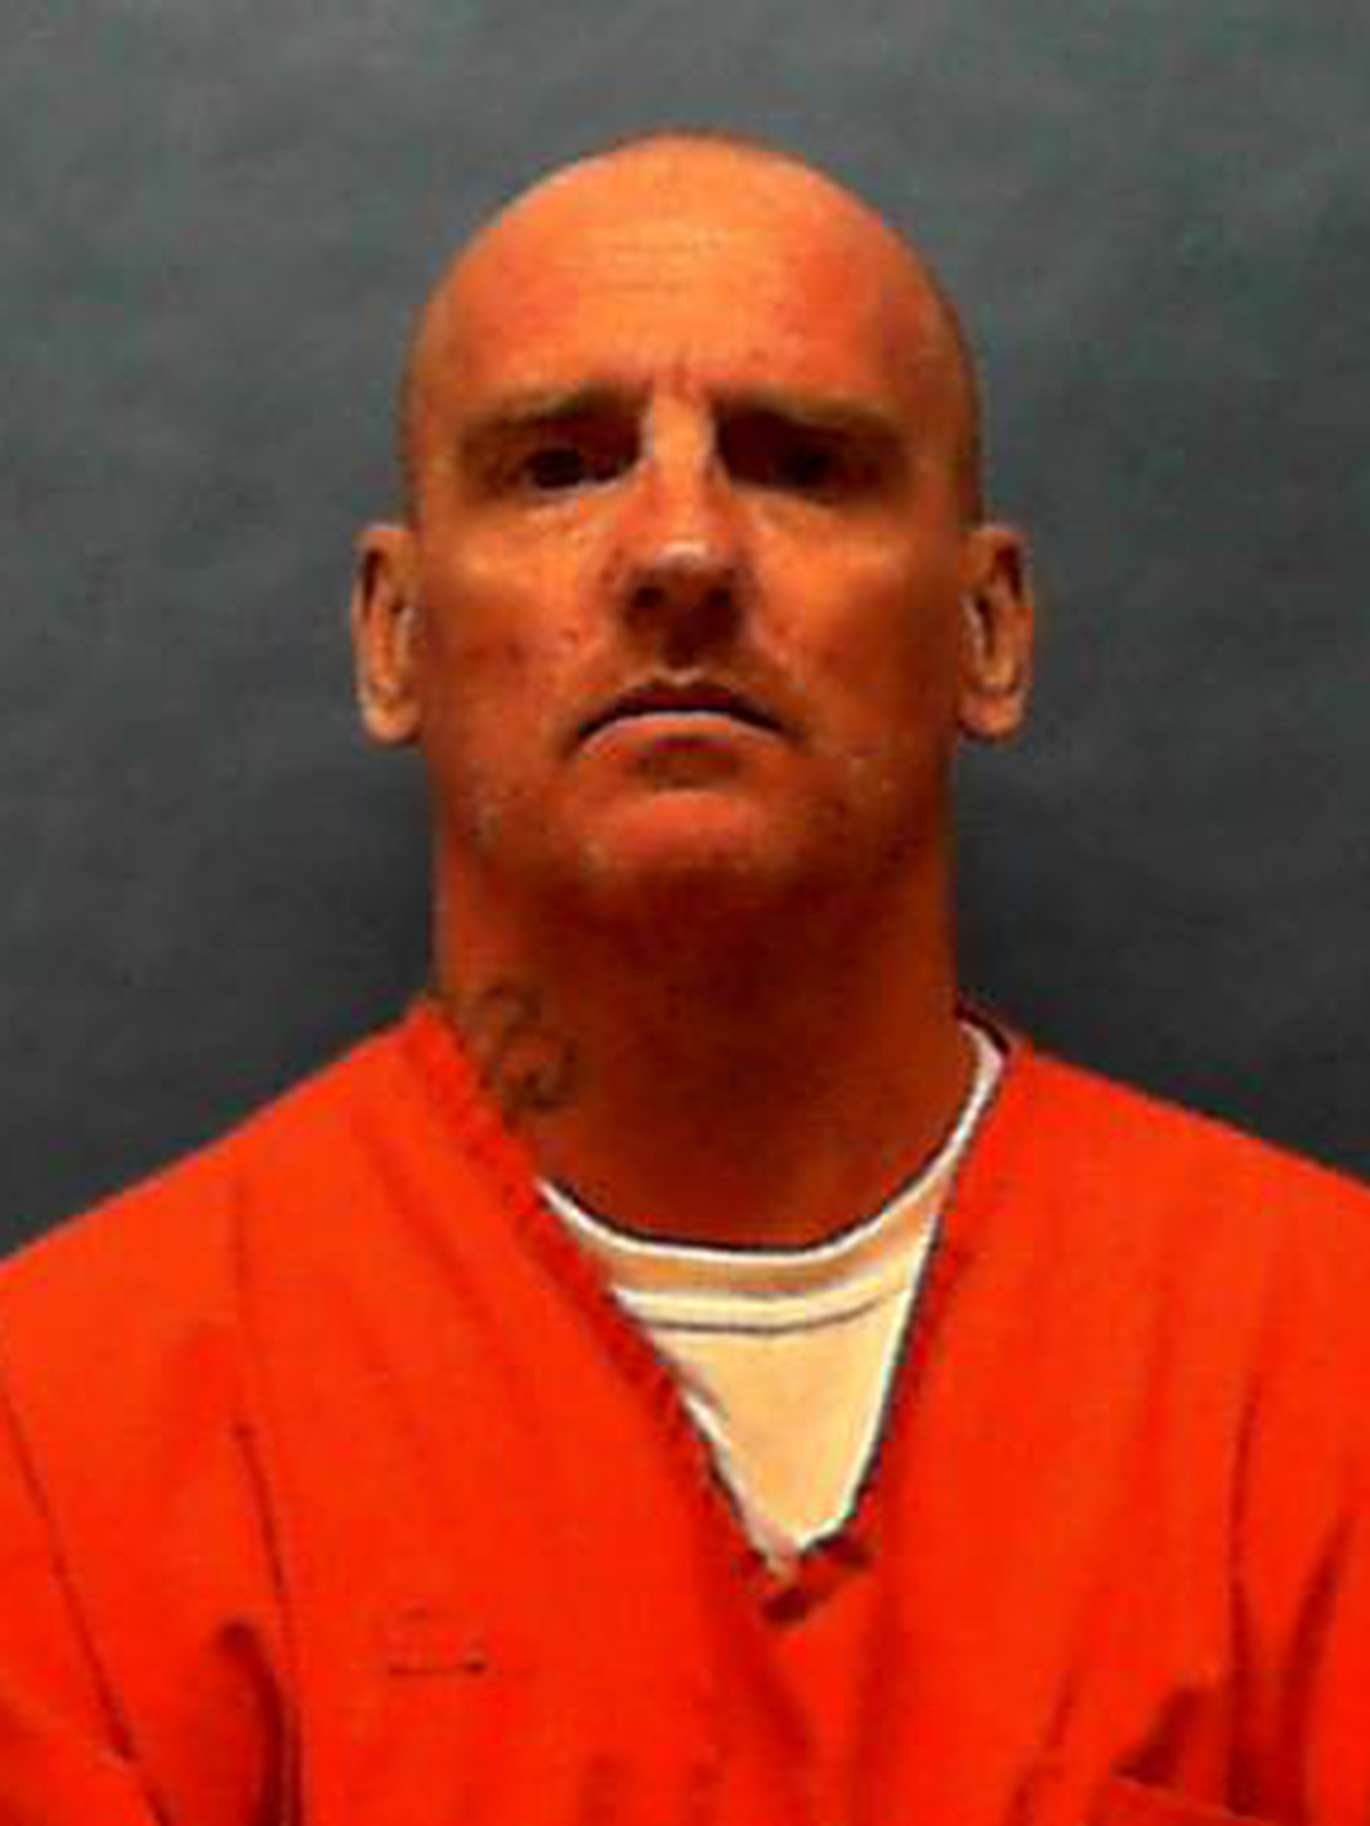 In July 2002, 13 years after being convicted of second-degree murder for killing a male client, prostitute Phillup Partin picked up 16-year-old hitchhiker Joshan Ashbrook. They swam and fished and then he stangled her and broke her neck. Partin was a fugitive for a year before being tracked to North Carolina. He was sentenced to death in December of 2008.